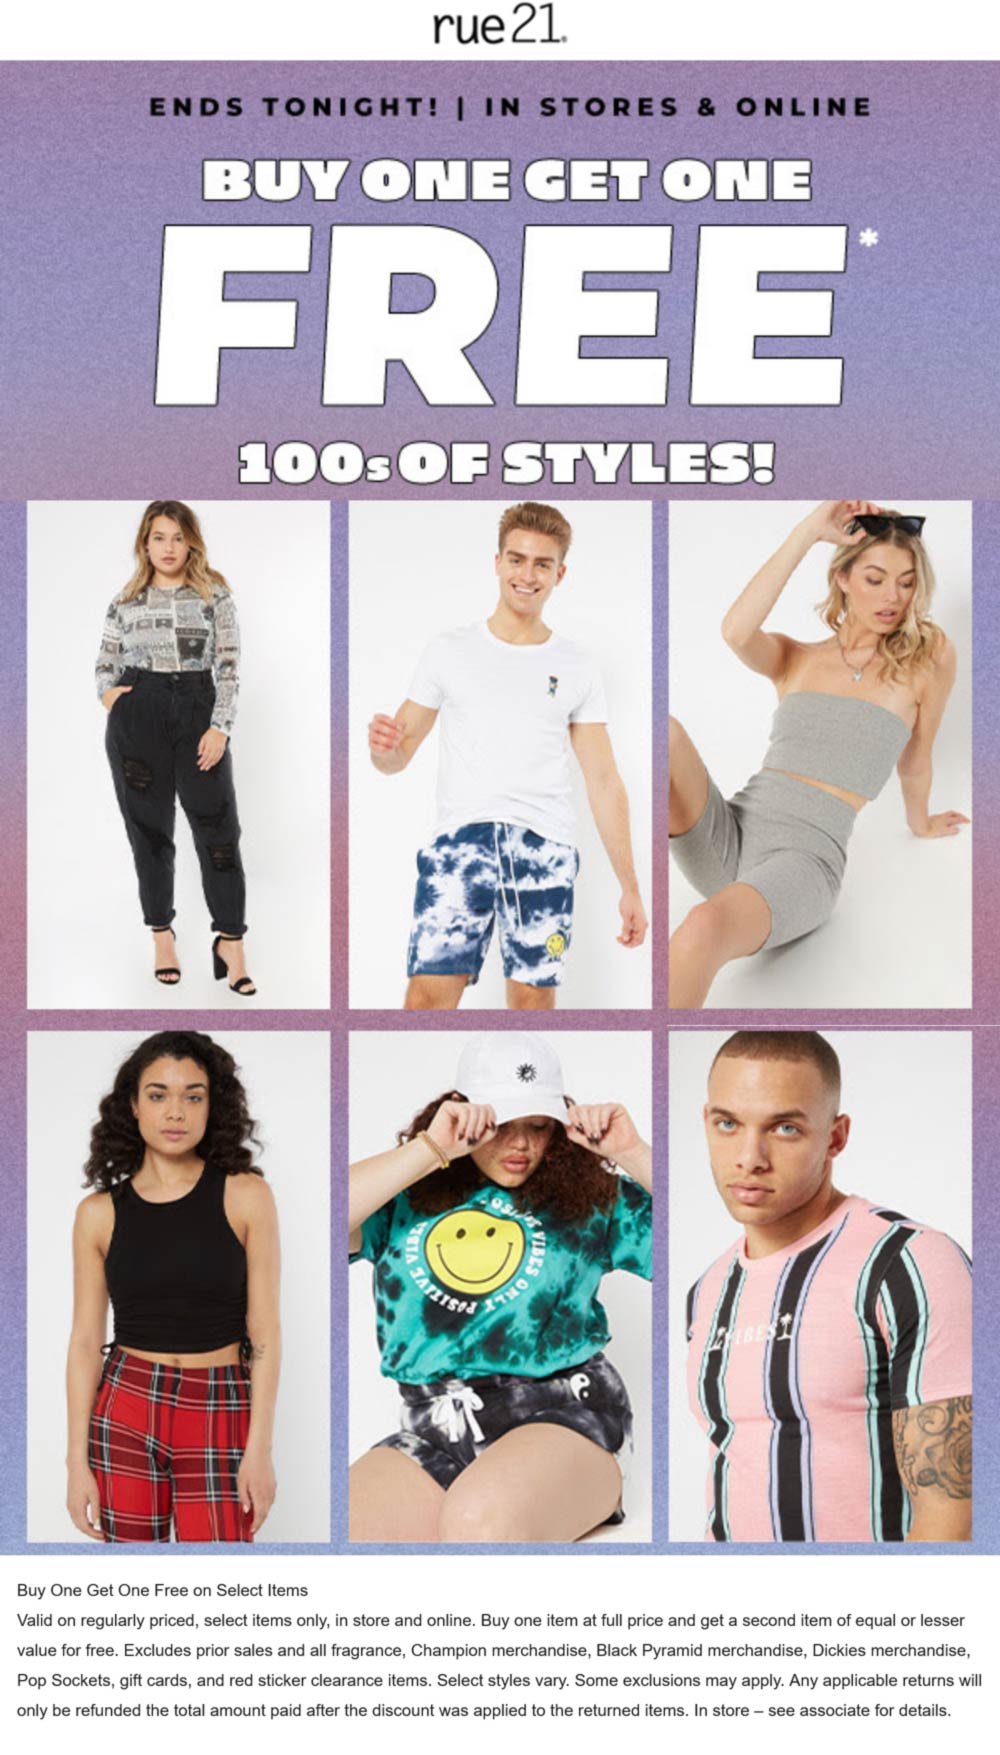 rue21 stores Coupon  Second item free today at rue21, ditto online #rue21